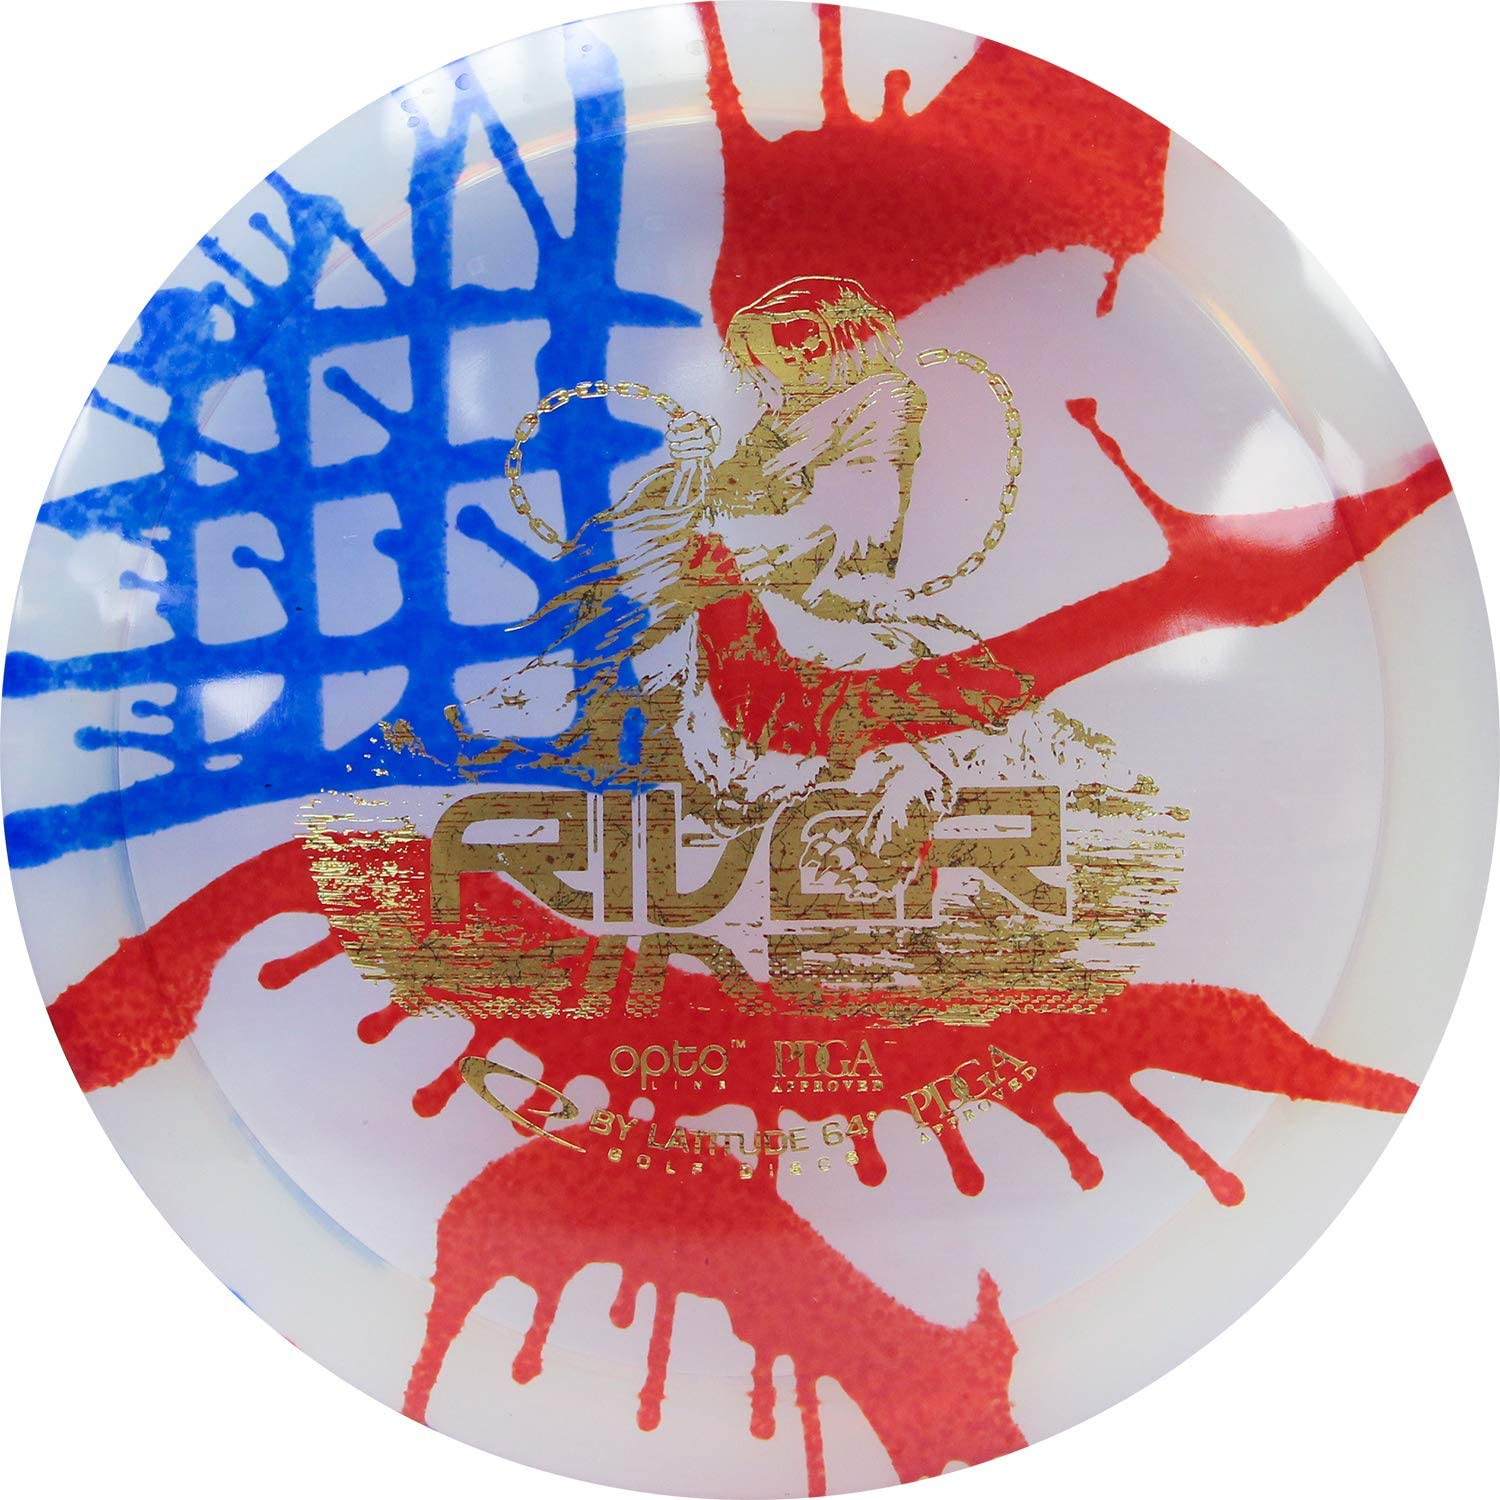 Latitude 64 MyDye American Flag Disc Golf Discs | Maximum Distance Drivers | Stable Midrange | Frisbee Golf Discs | Stamp Color Will Vary